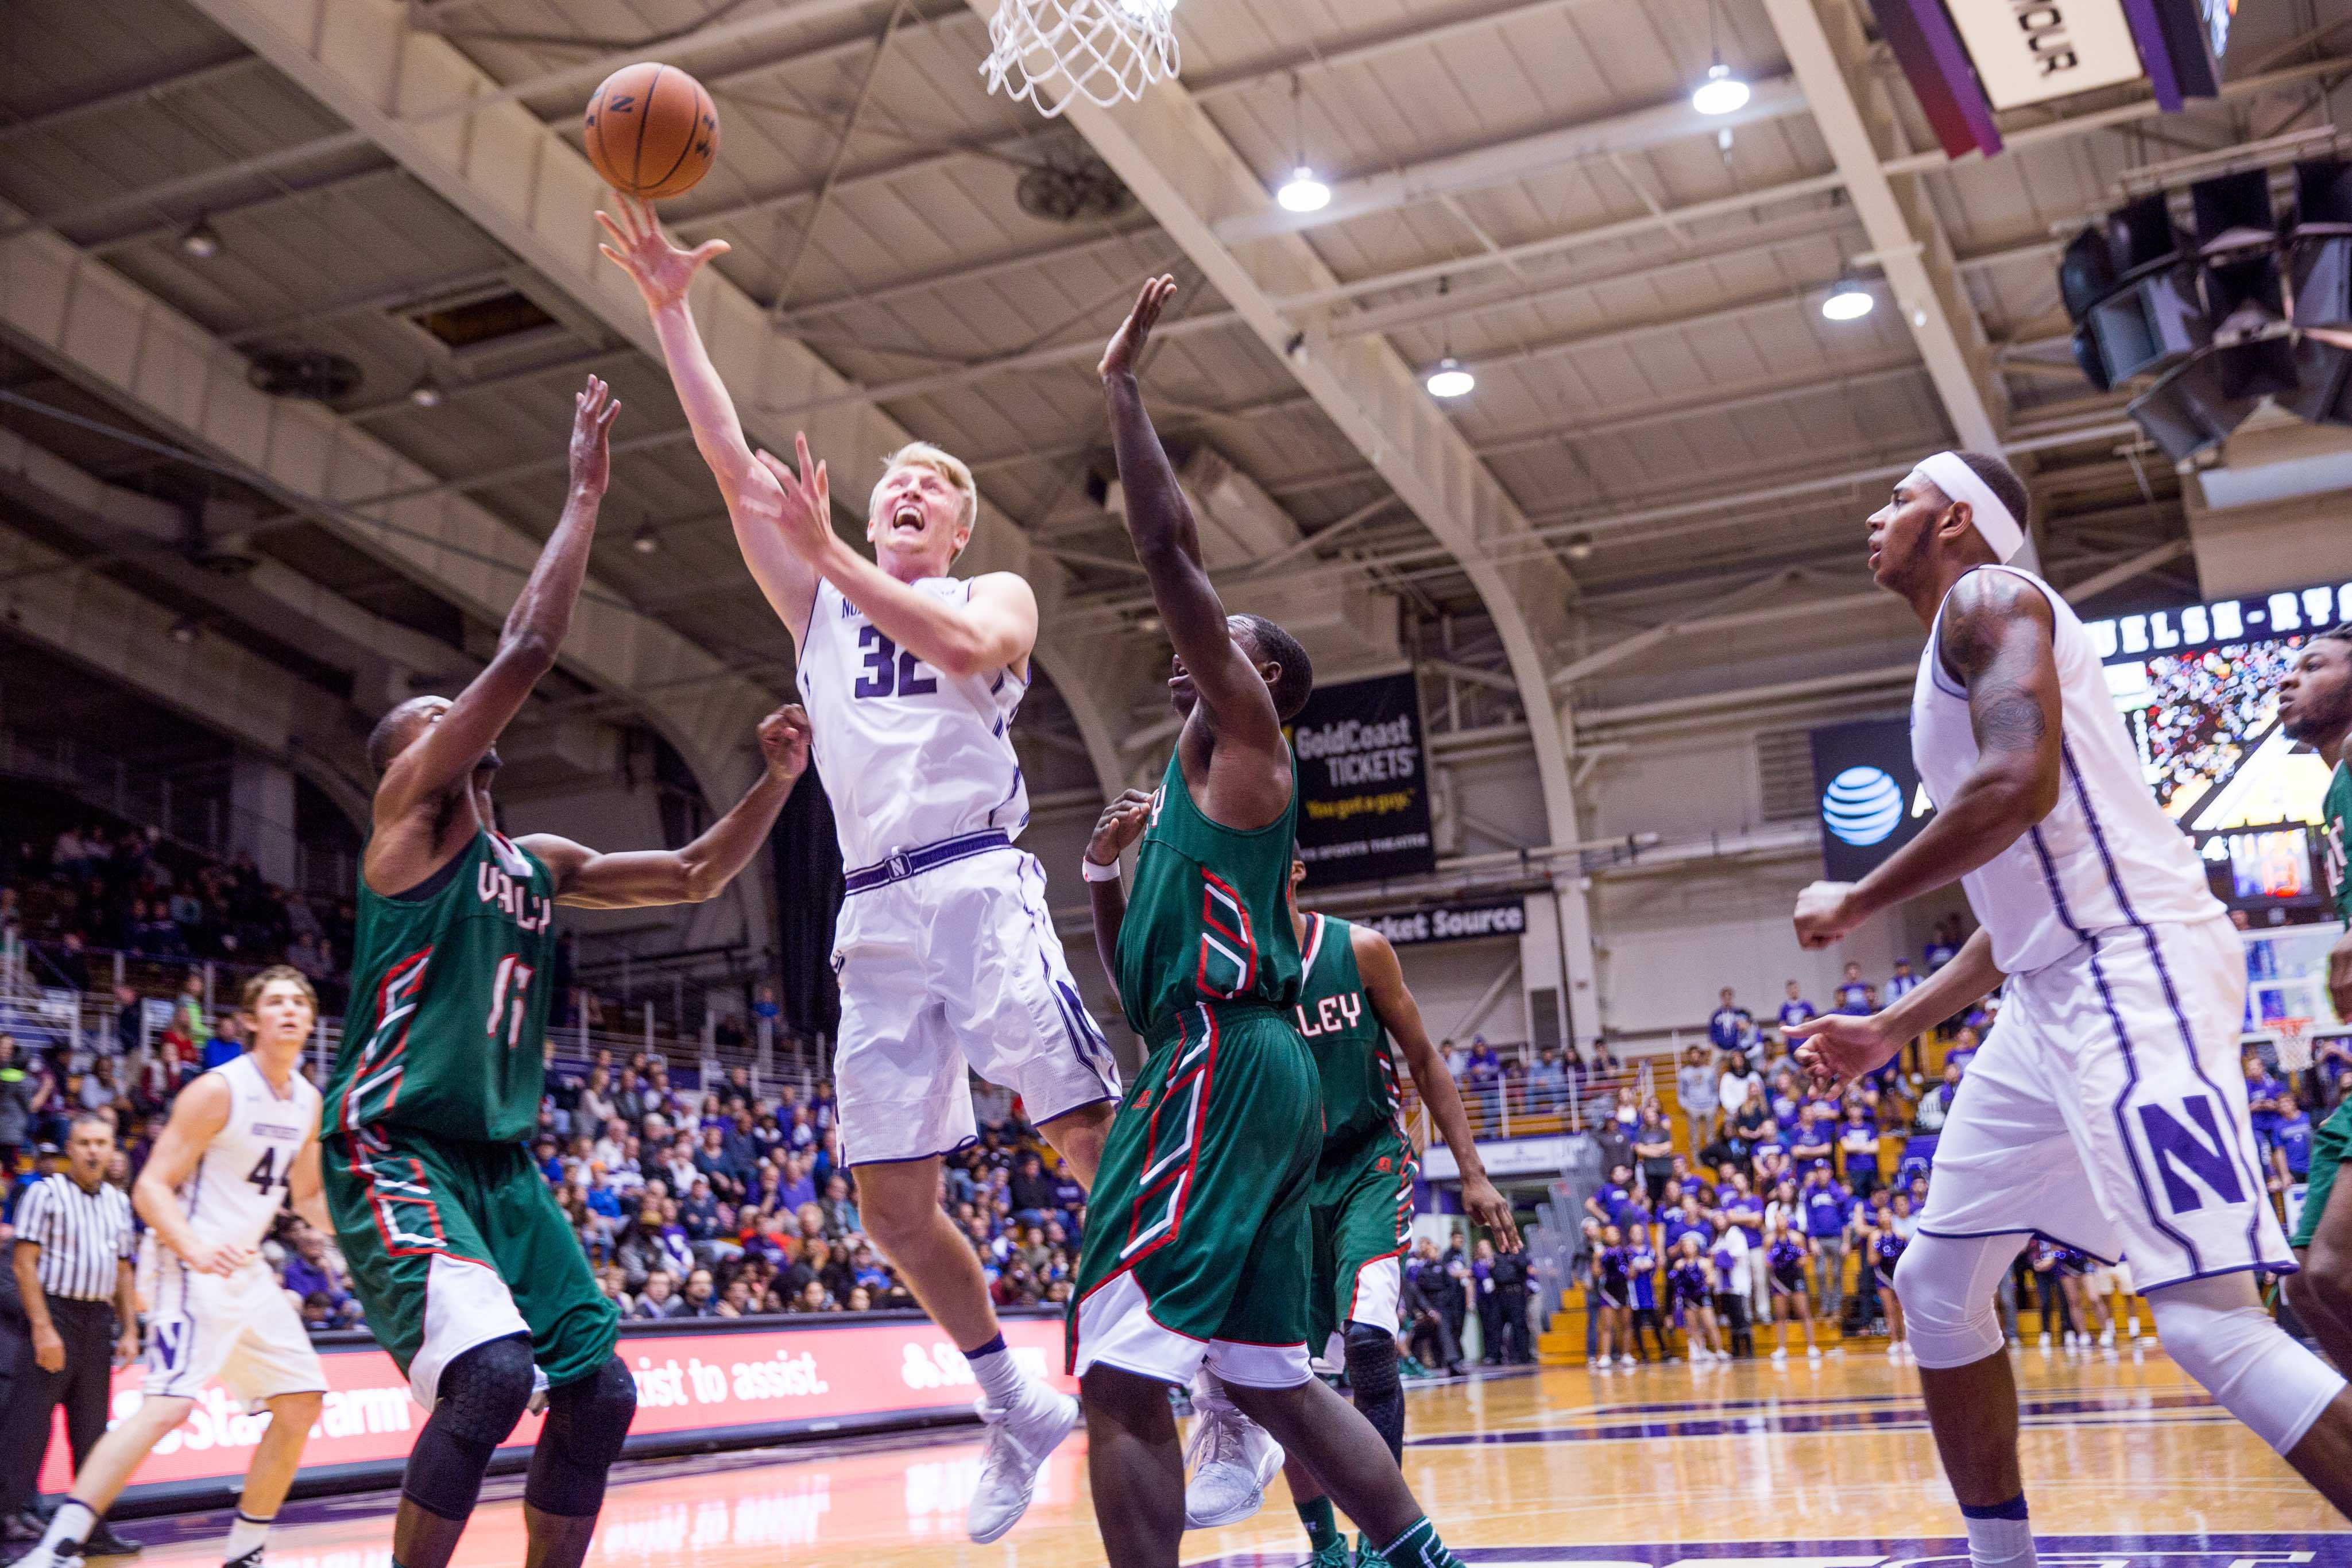 Nathan Taphorn attempts a layup between two defenders. The senior forward scored a career-best 18 points against New Orleans.